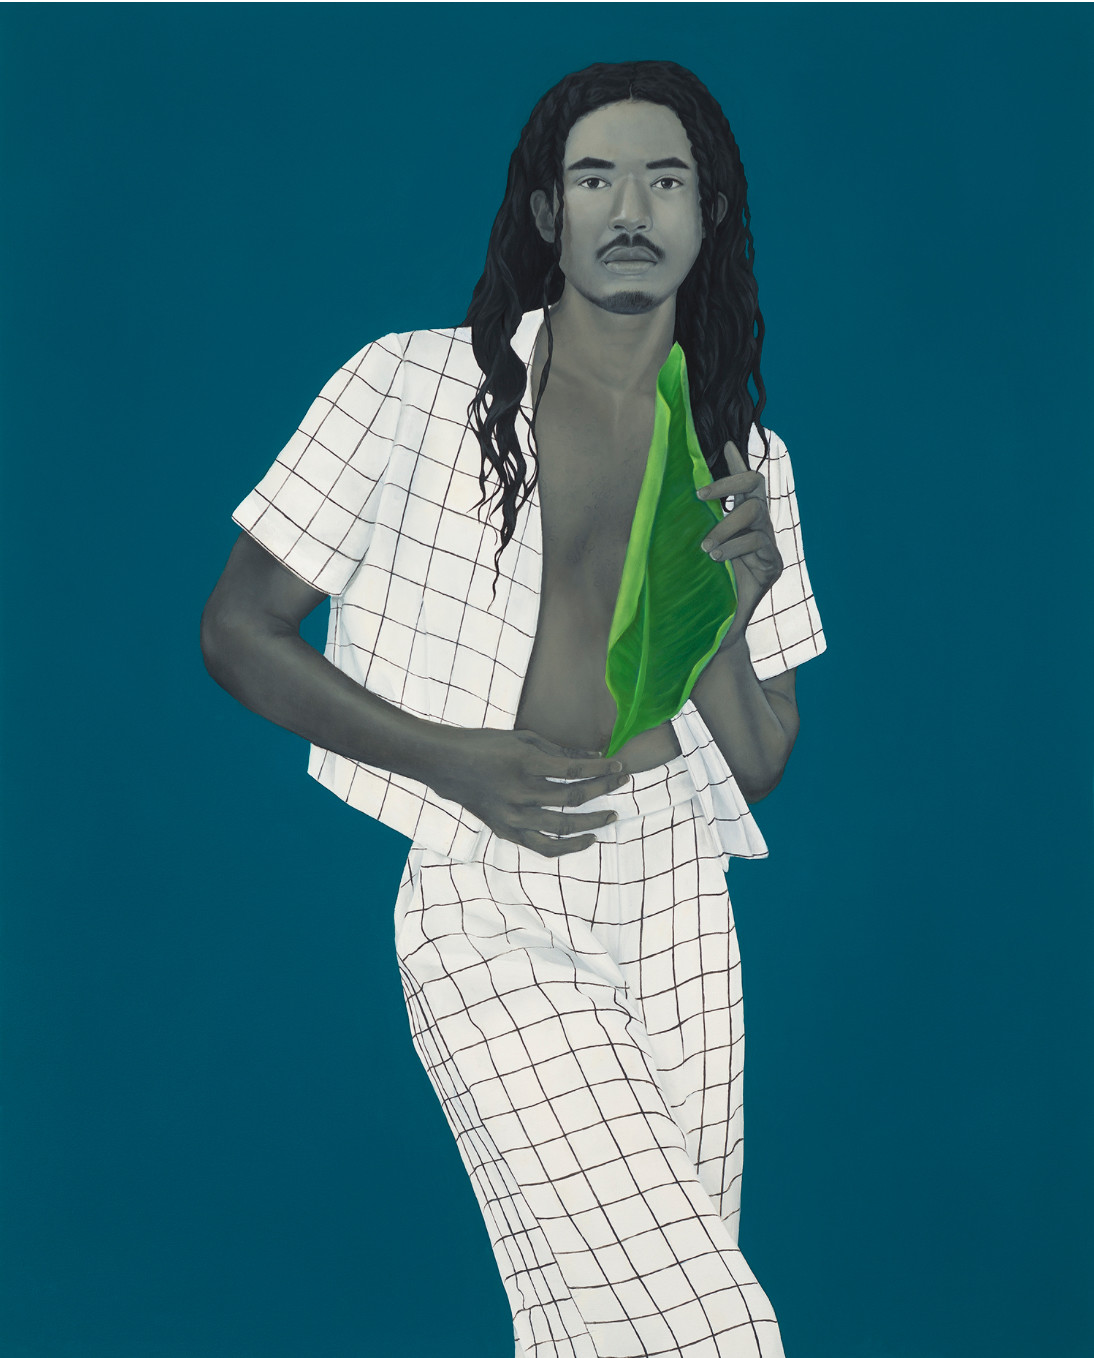 Amy Sherald, The lesson of falling leaves 2017, Oil on canvas 54 × 43 in. (137.16 × 109.22 cm) The Museum of Contemporary Art, Los Angeles Purchase with funds provided by the Acquisition and Collection Committee